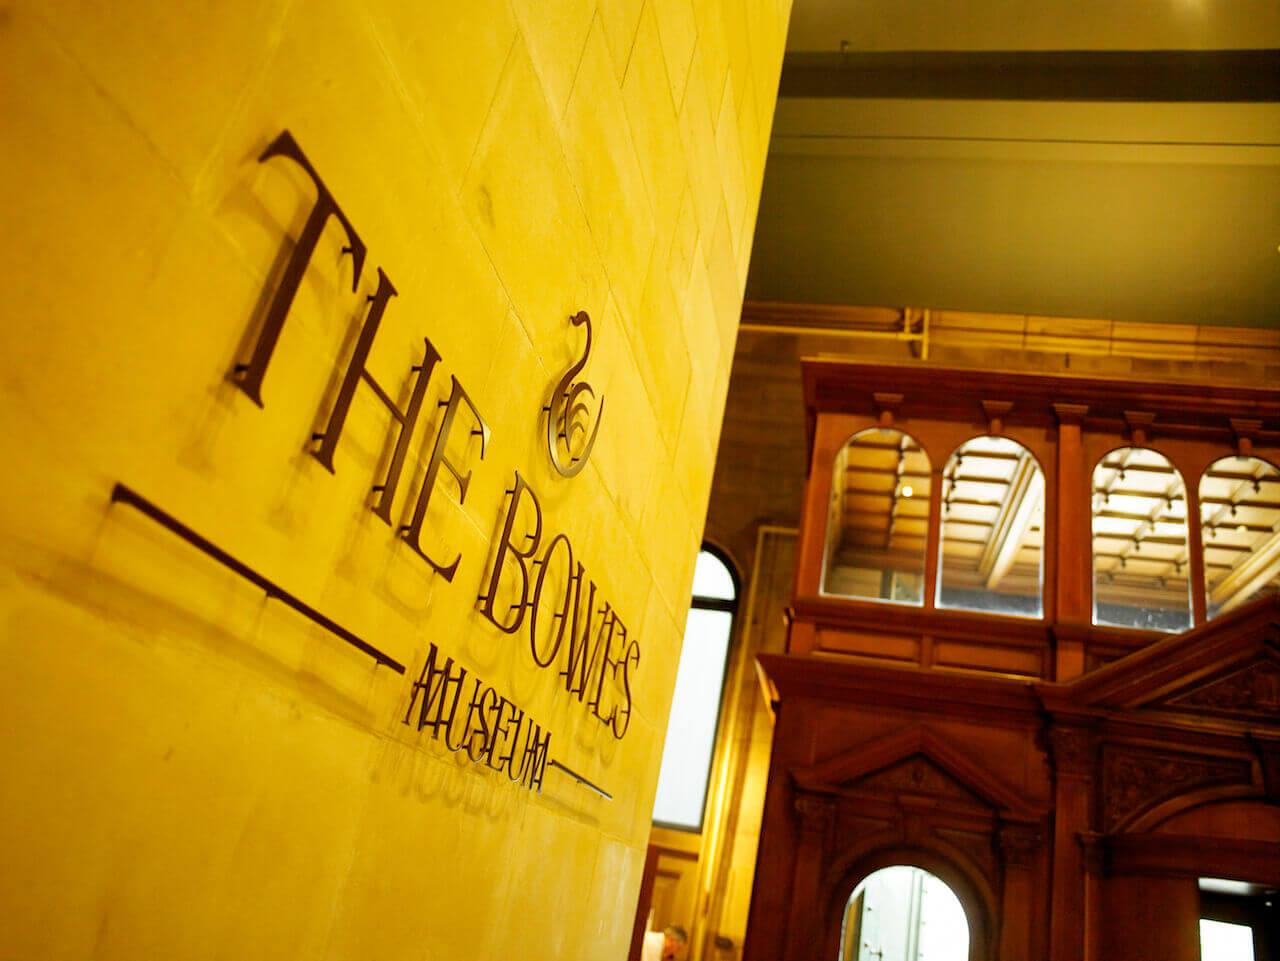 Design-led wayfinding and signage in the Bowes Museum foyer